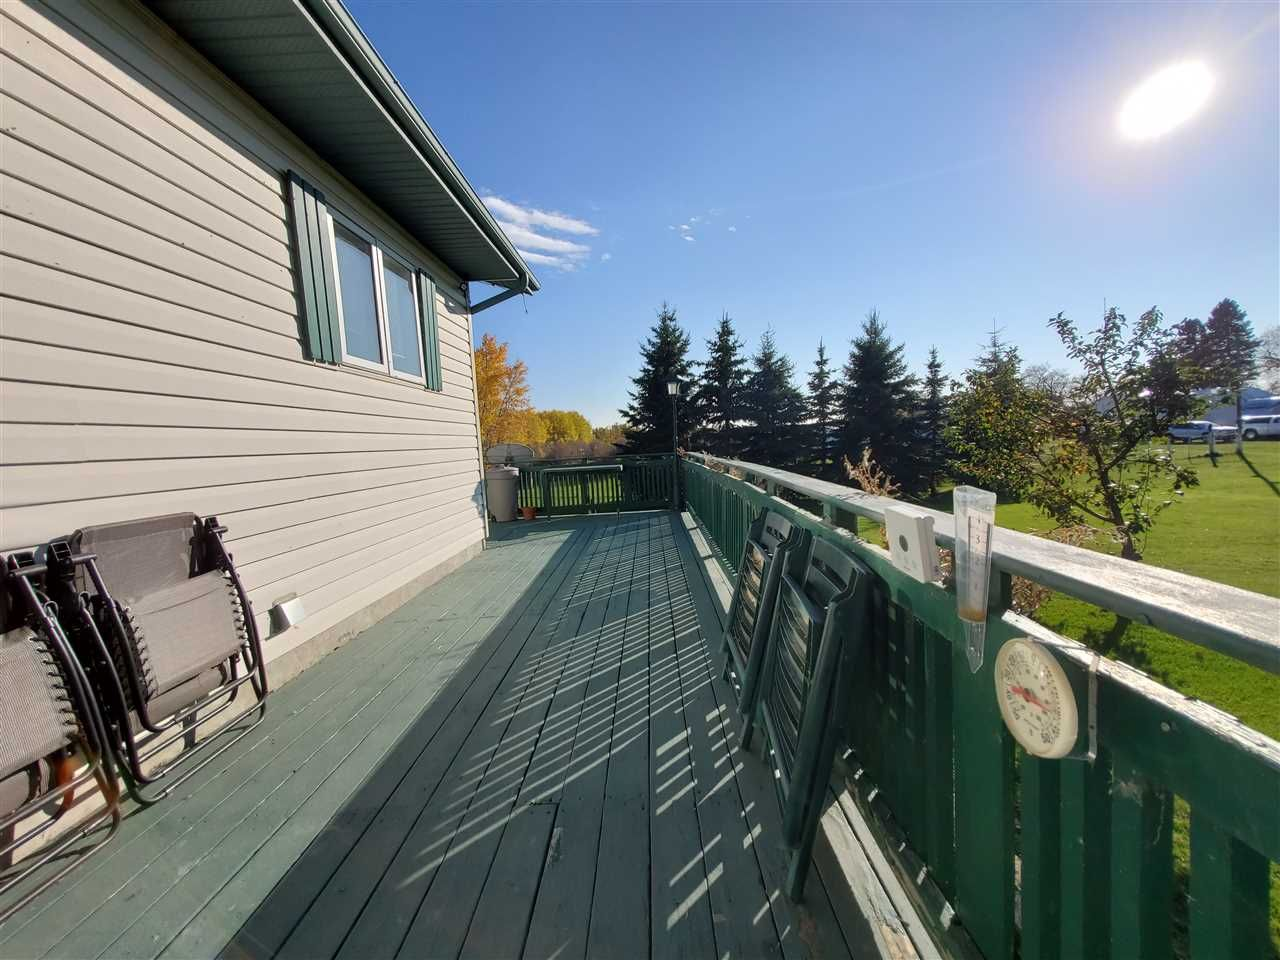 Photo 33: Photos: 265073 Twp Rd 472A: Rural Wetaskiwin County House for sale : MLS®# E4216435